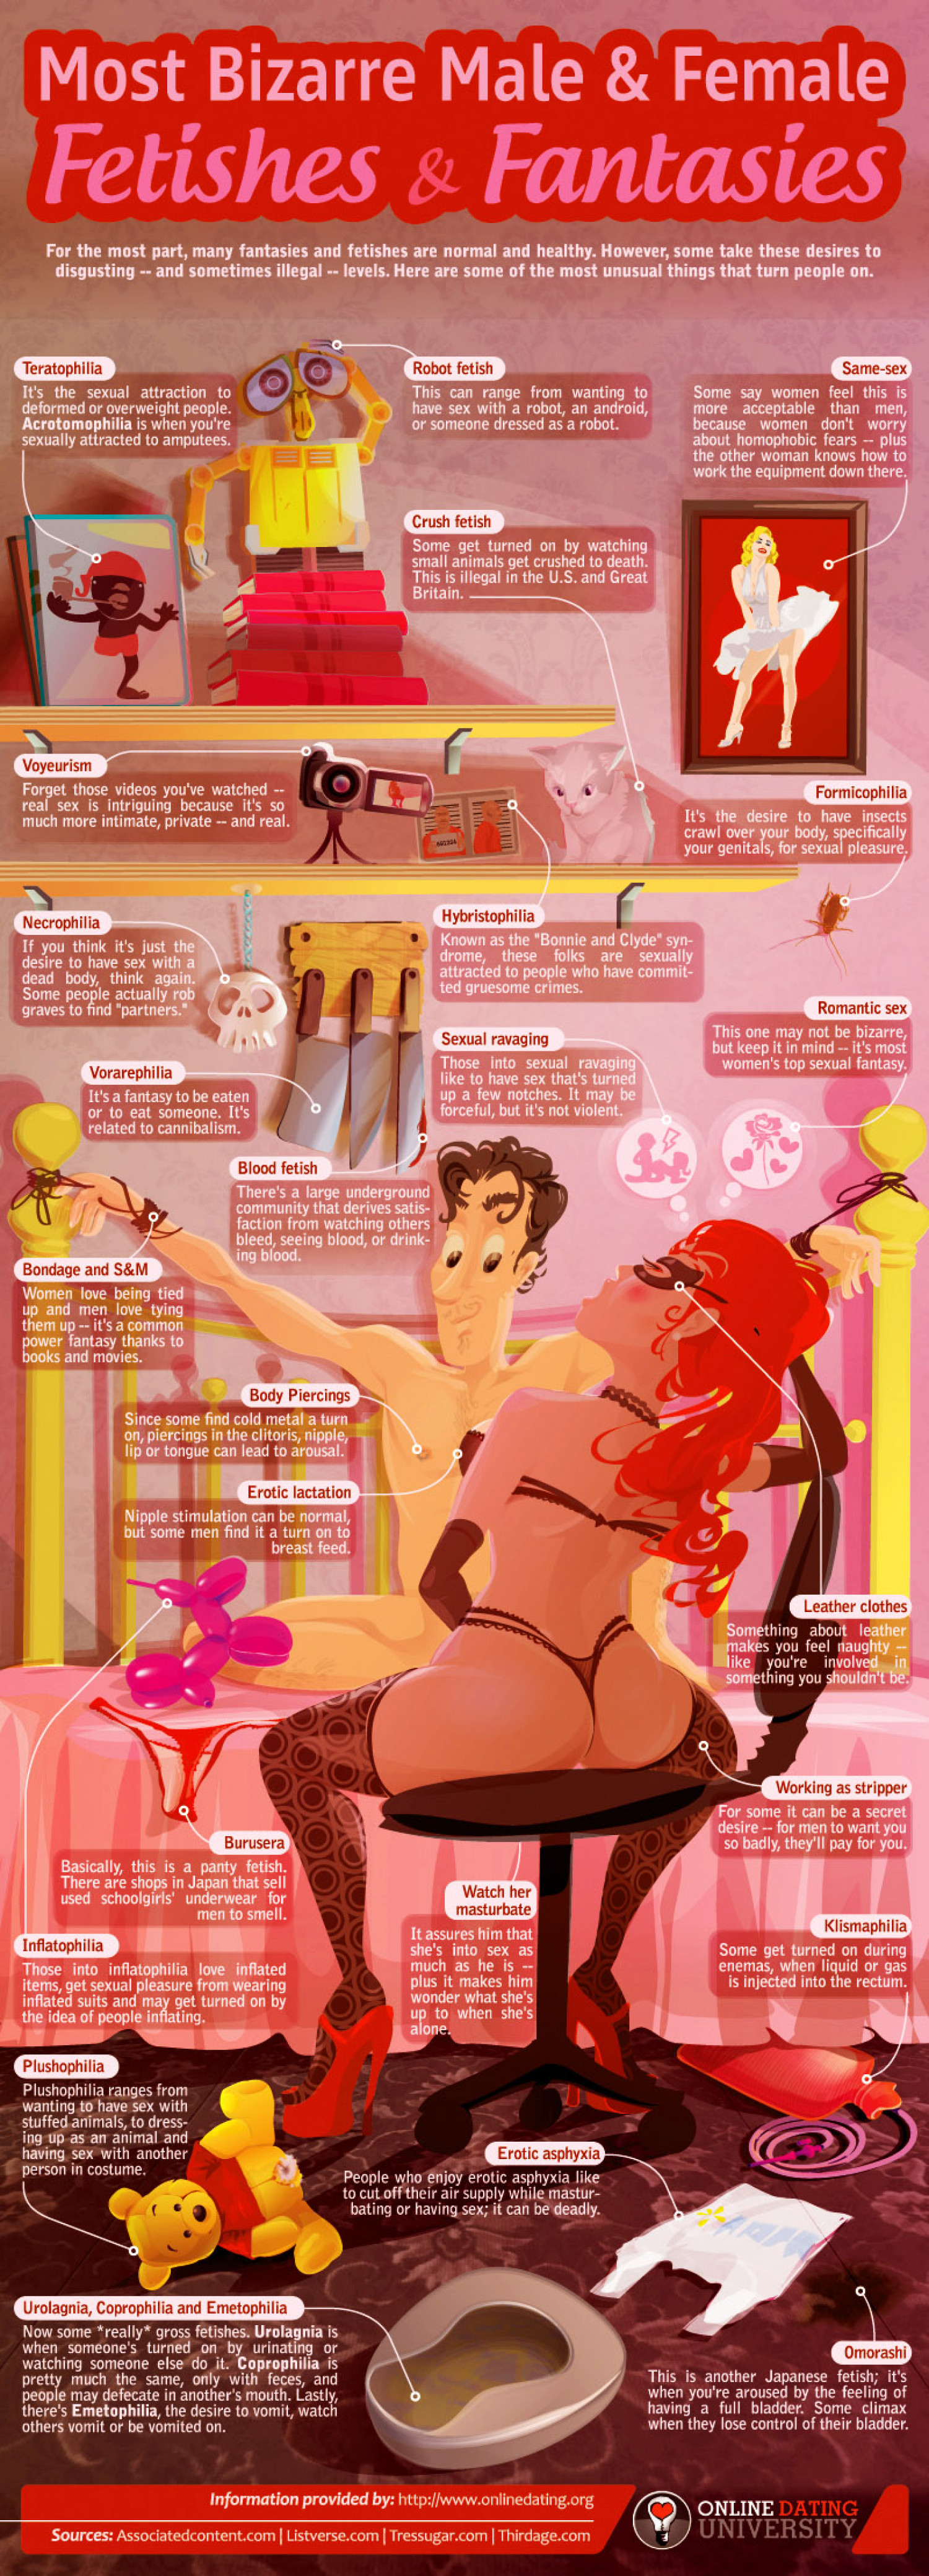 Fetishes & Fantasies Are Normal, These Are Not Infographic